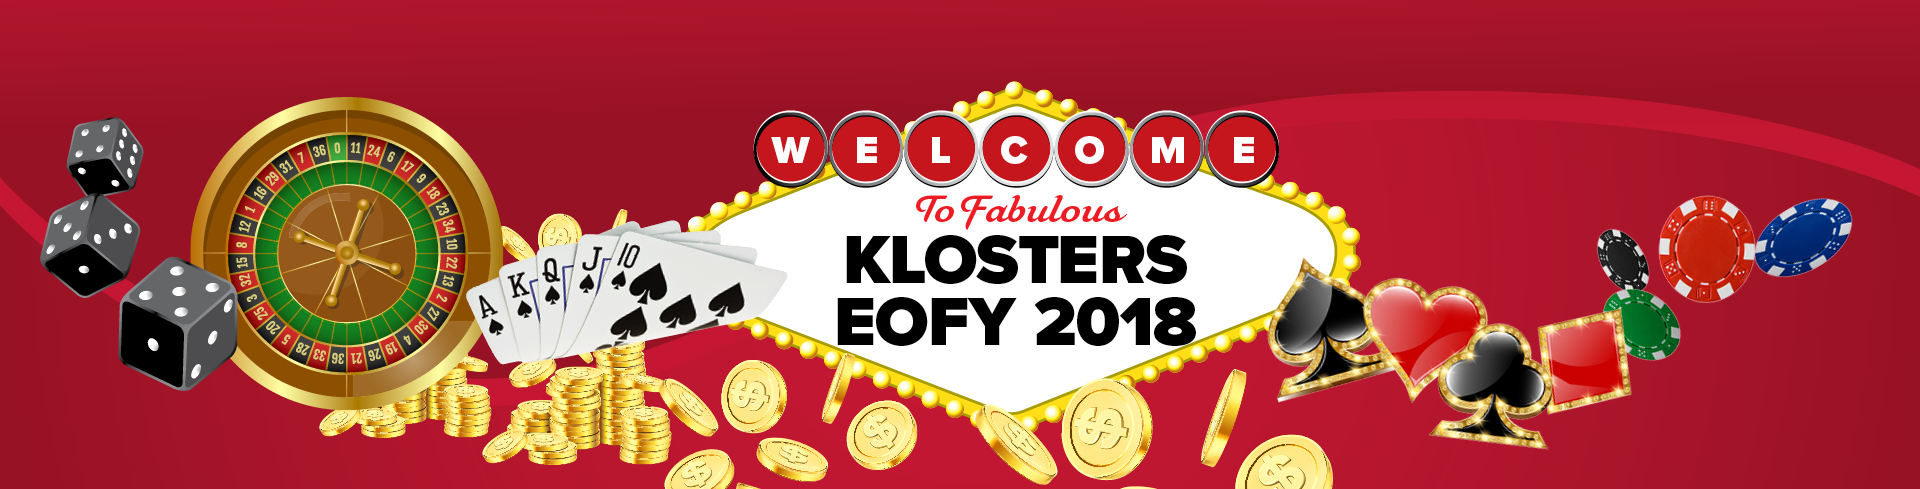 Welcome to Klosters EOFY 2018